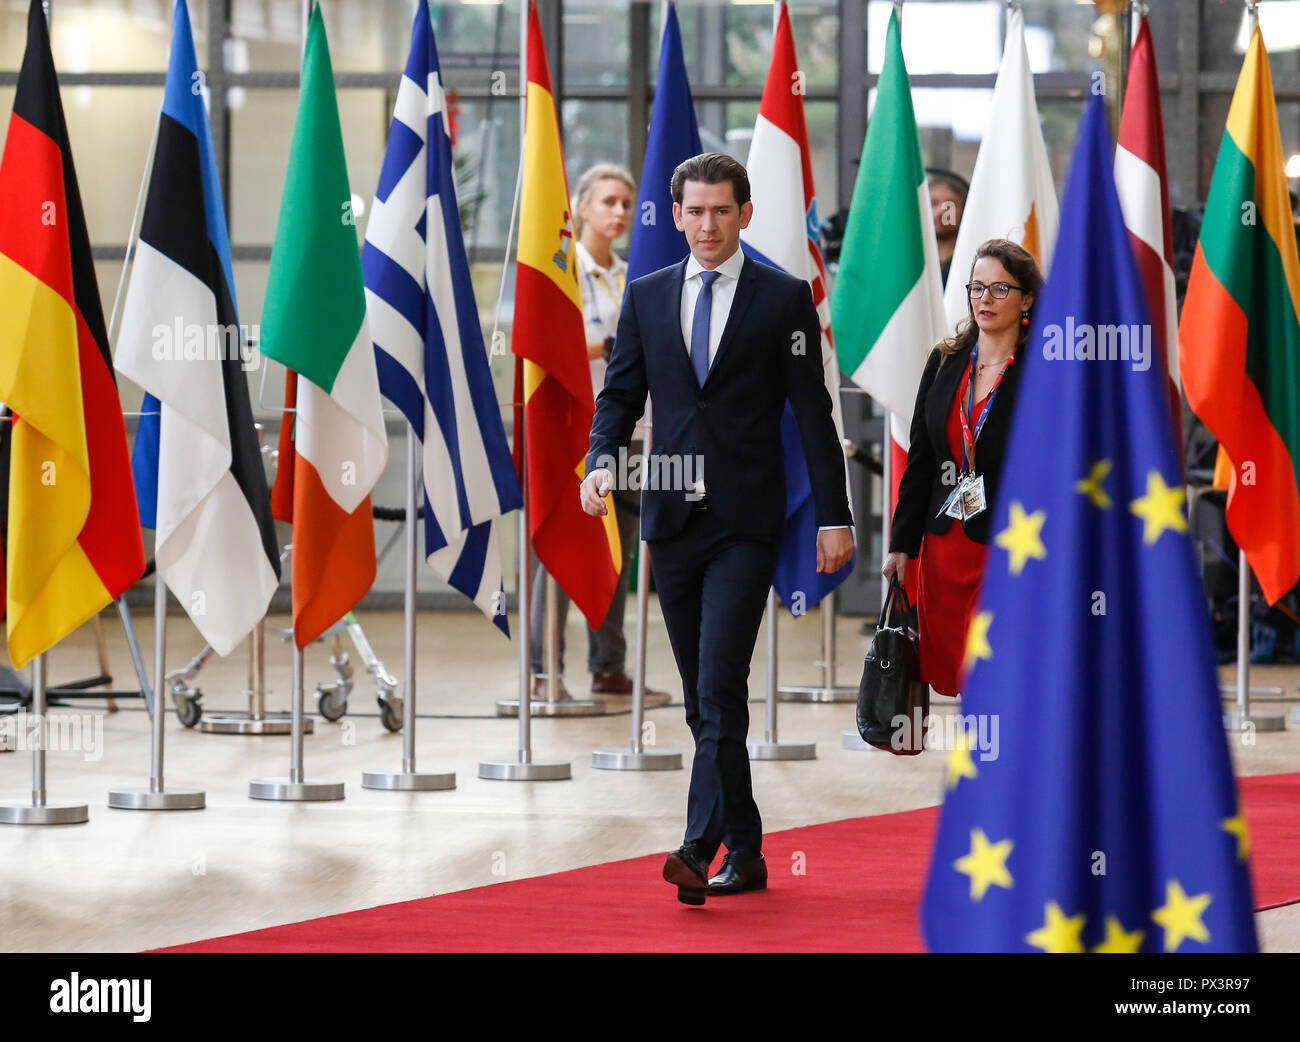 Brussels, Belgium. 18th Oct 2018. Sebastian Kurz, the Federal Chancellor of Austria arrives for European Council meeting in Brussels, Belgium on October 18, 2018.The summit concentrates on migration and security policies. Credit: Michal Busko/Alamy Live News - Stock Image